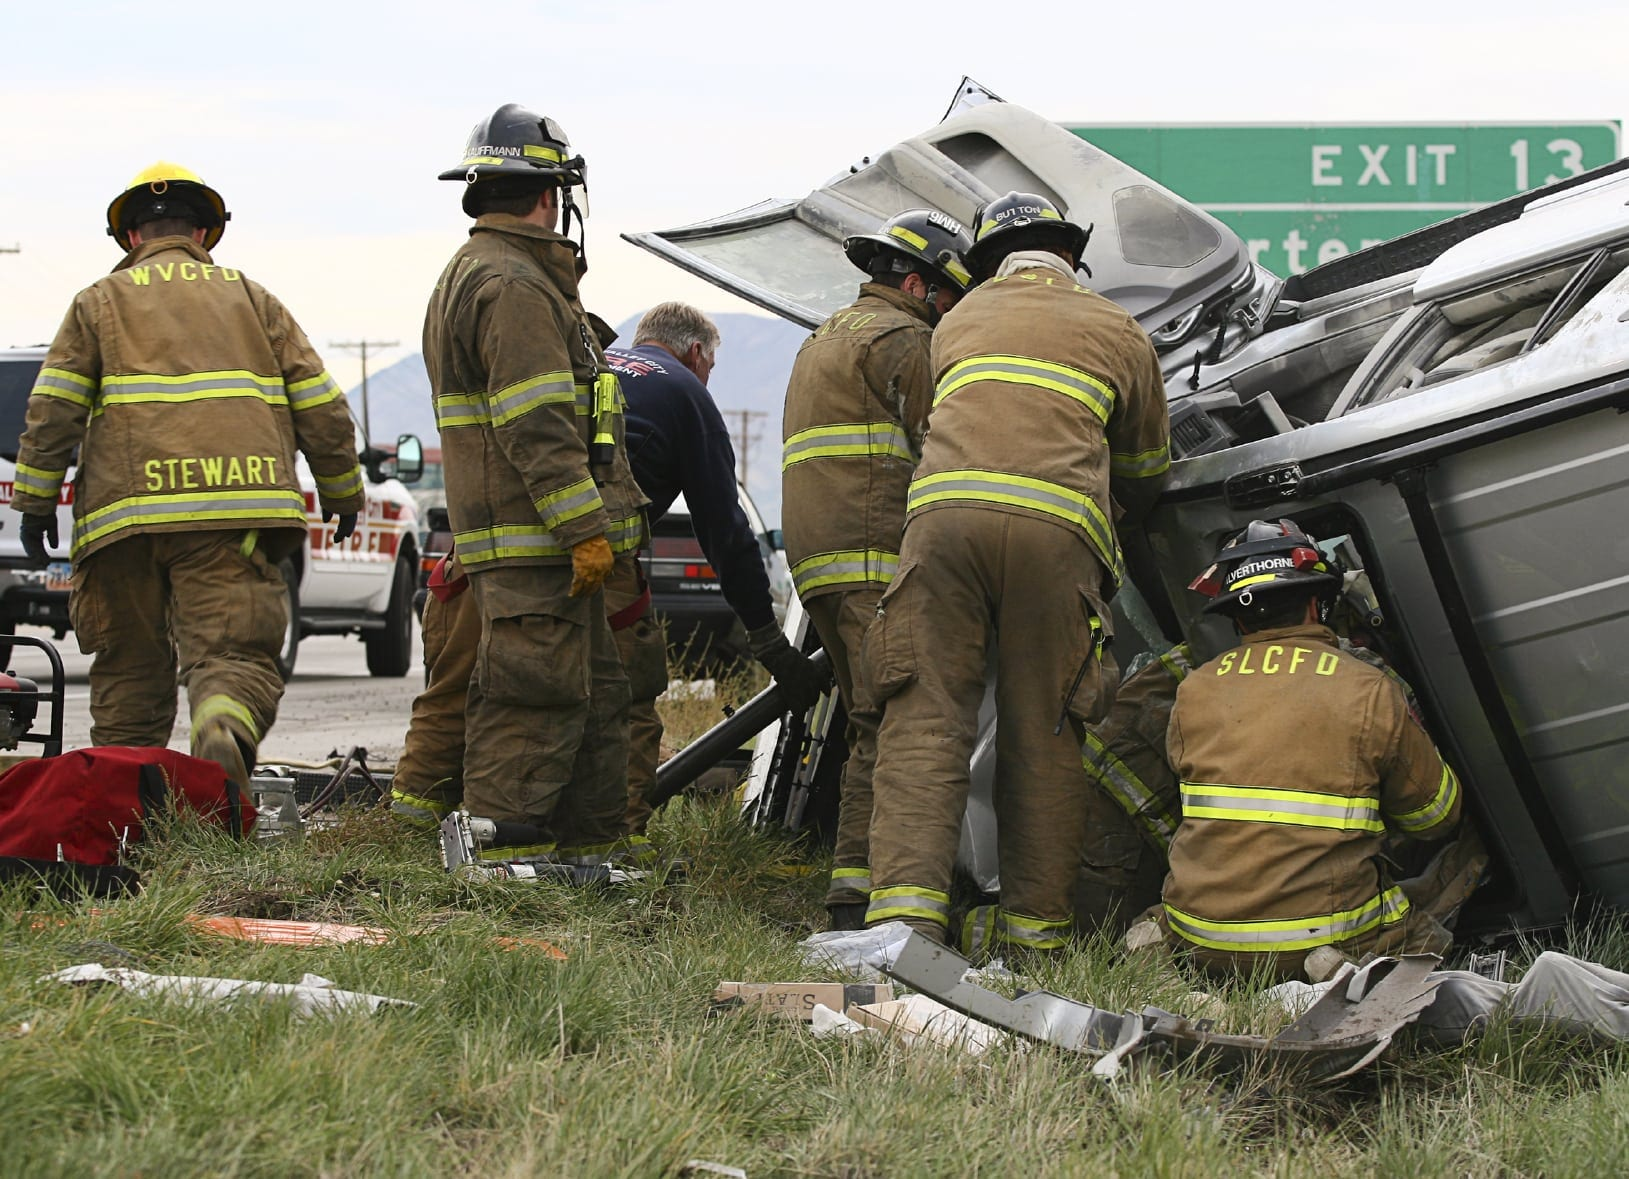 First Responders Responding To A Rollover Car Accident Stock Photo